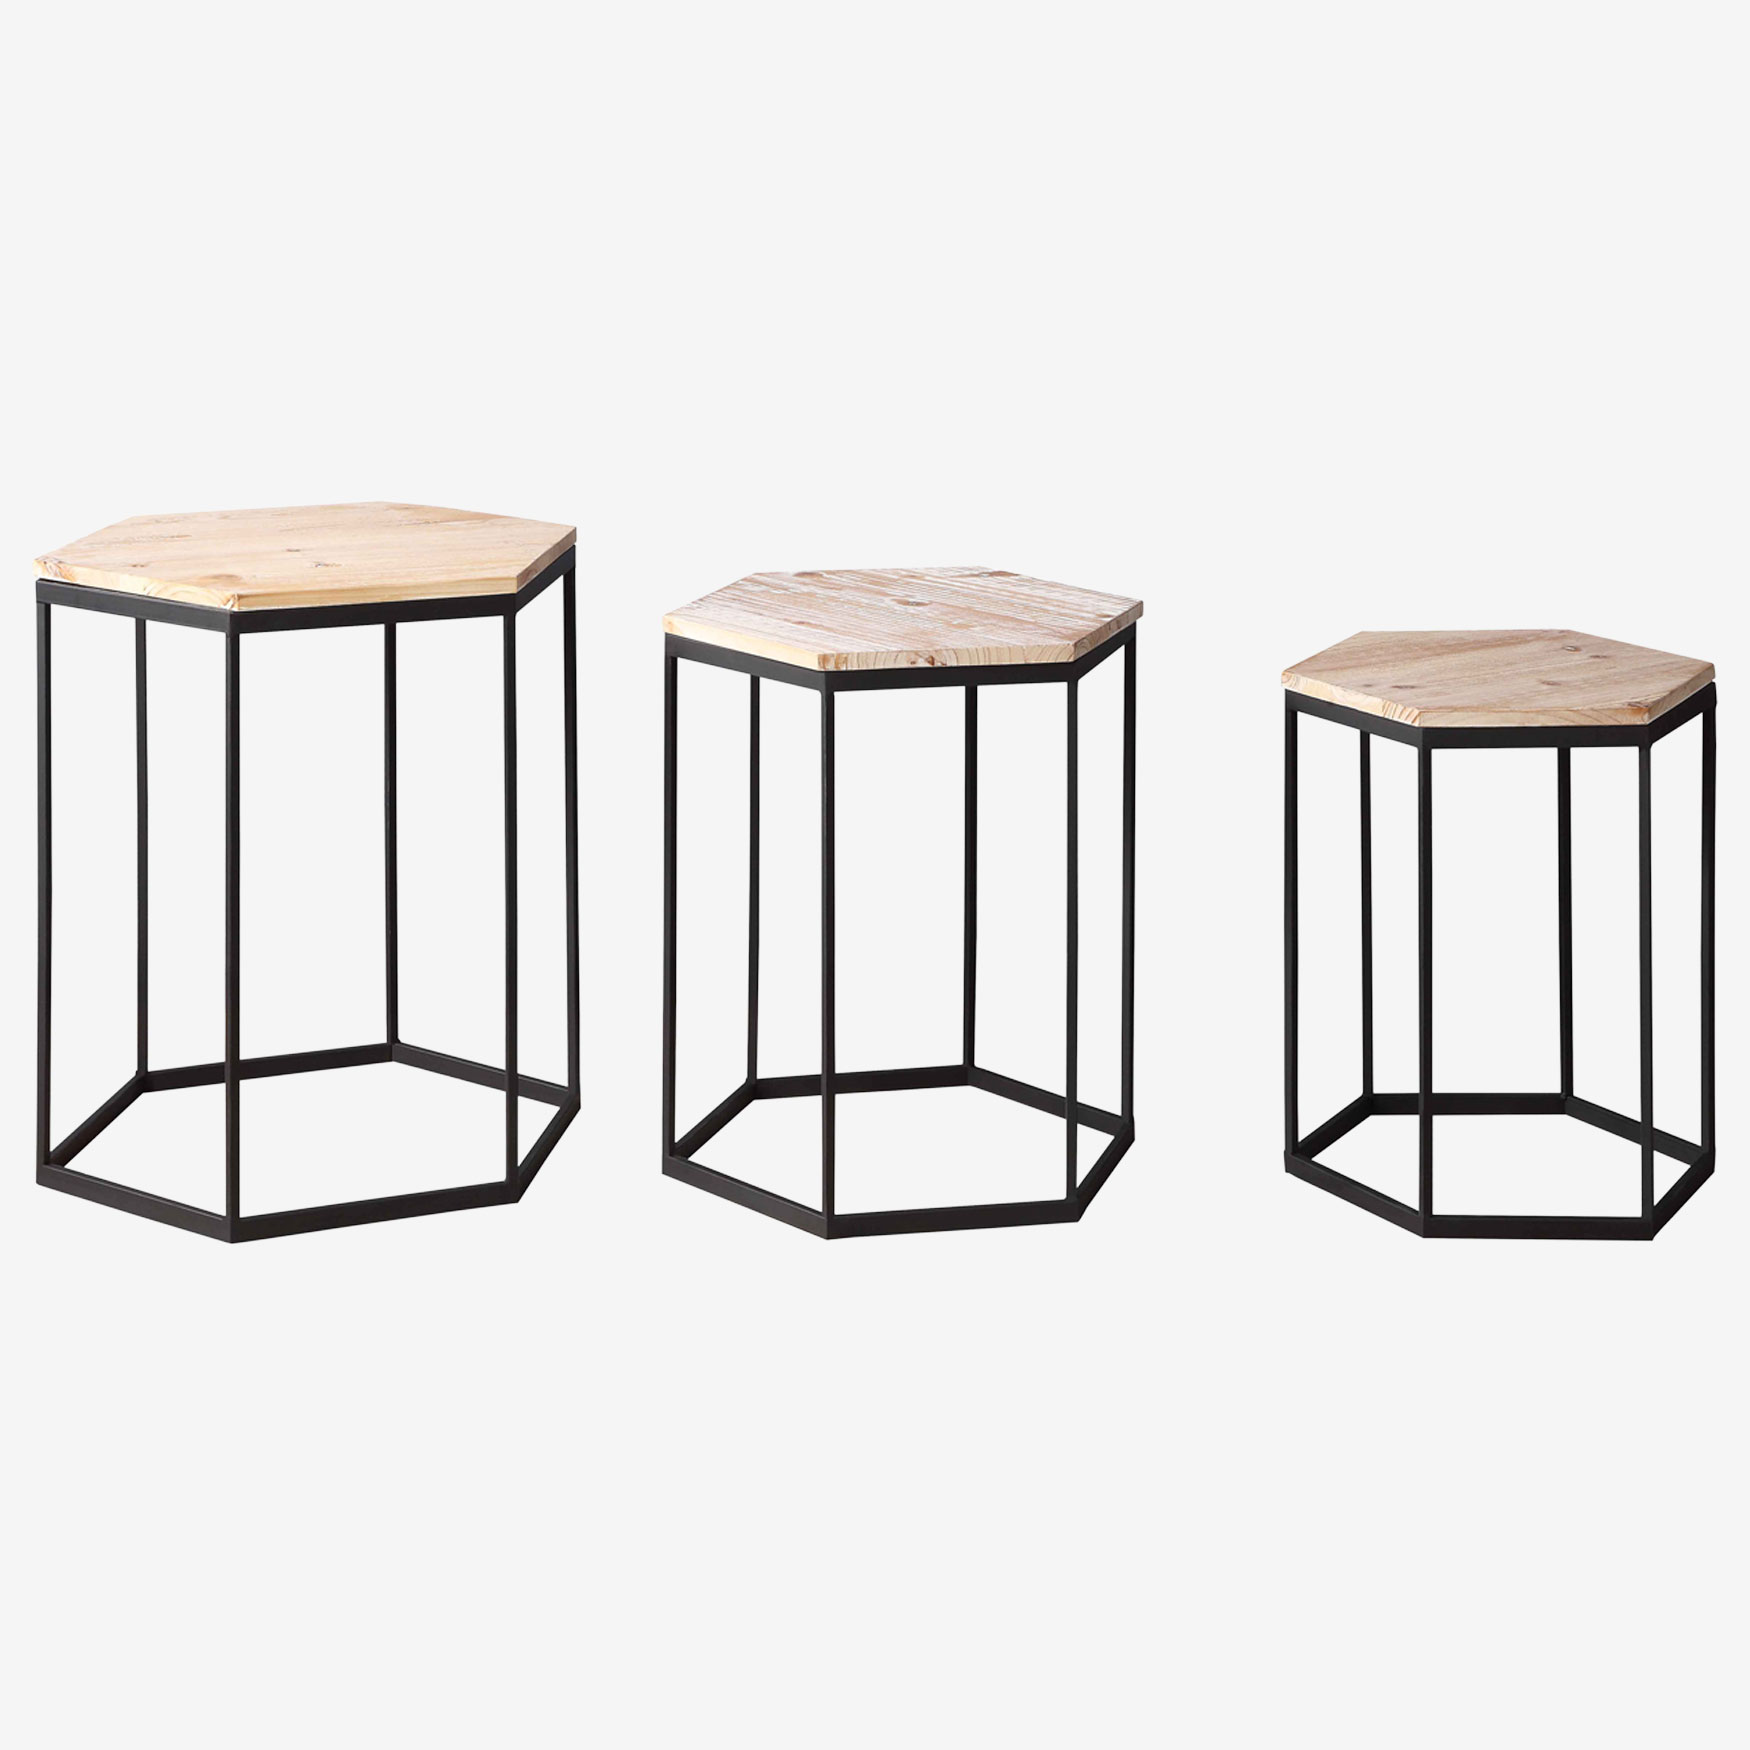 Layton Set of 3 Nesting Sextagon Tables, BLACK METAL